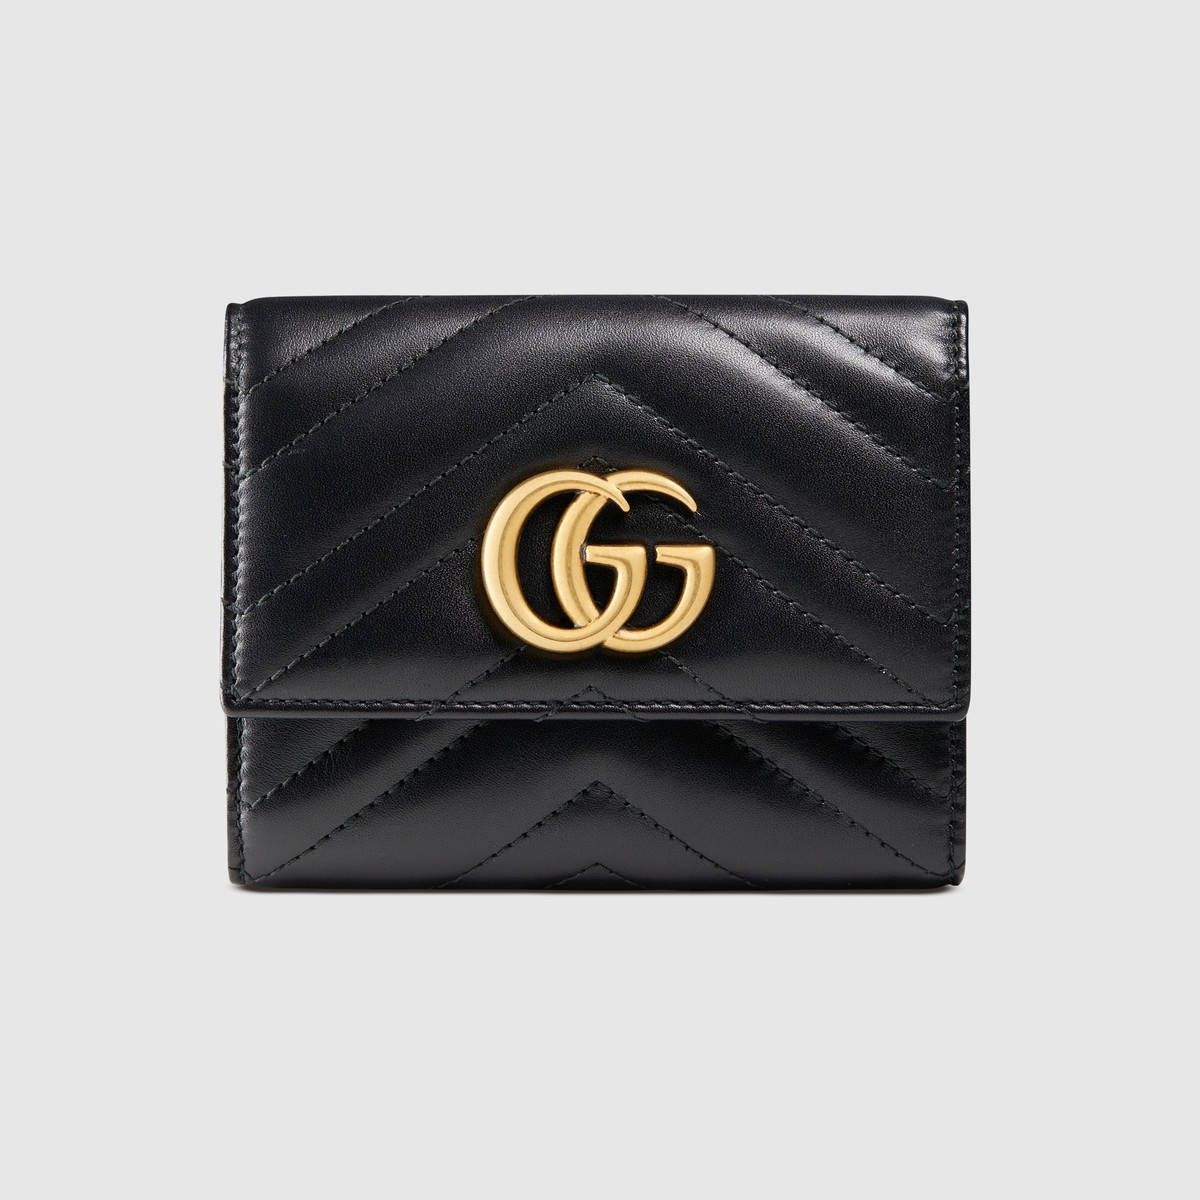 caabb6d8280 GUCCI Gg Marmont Matelassé Wallet - Black Matelassé Leather.  gucci  all